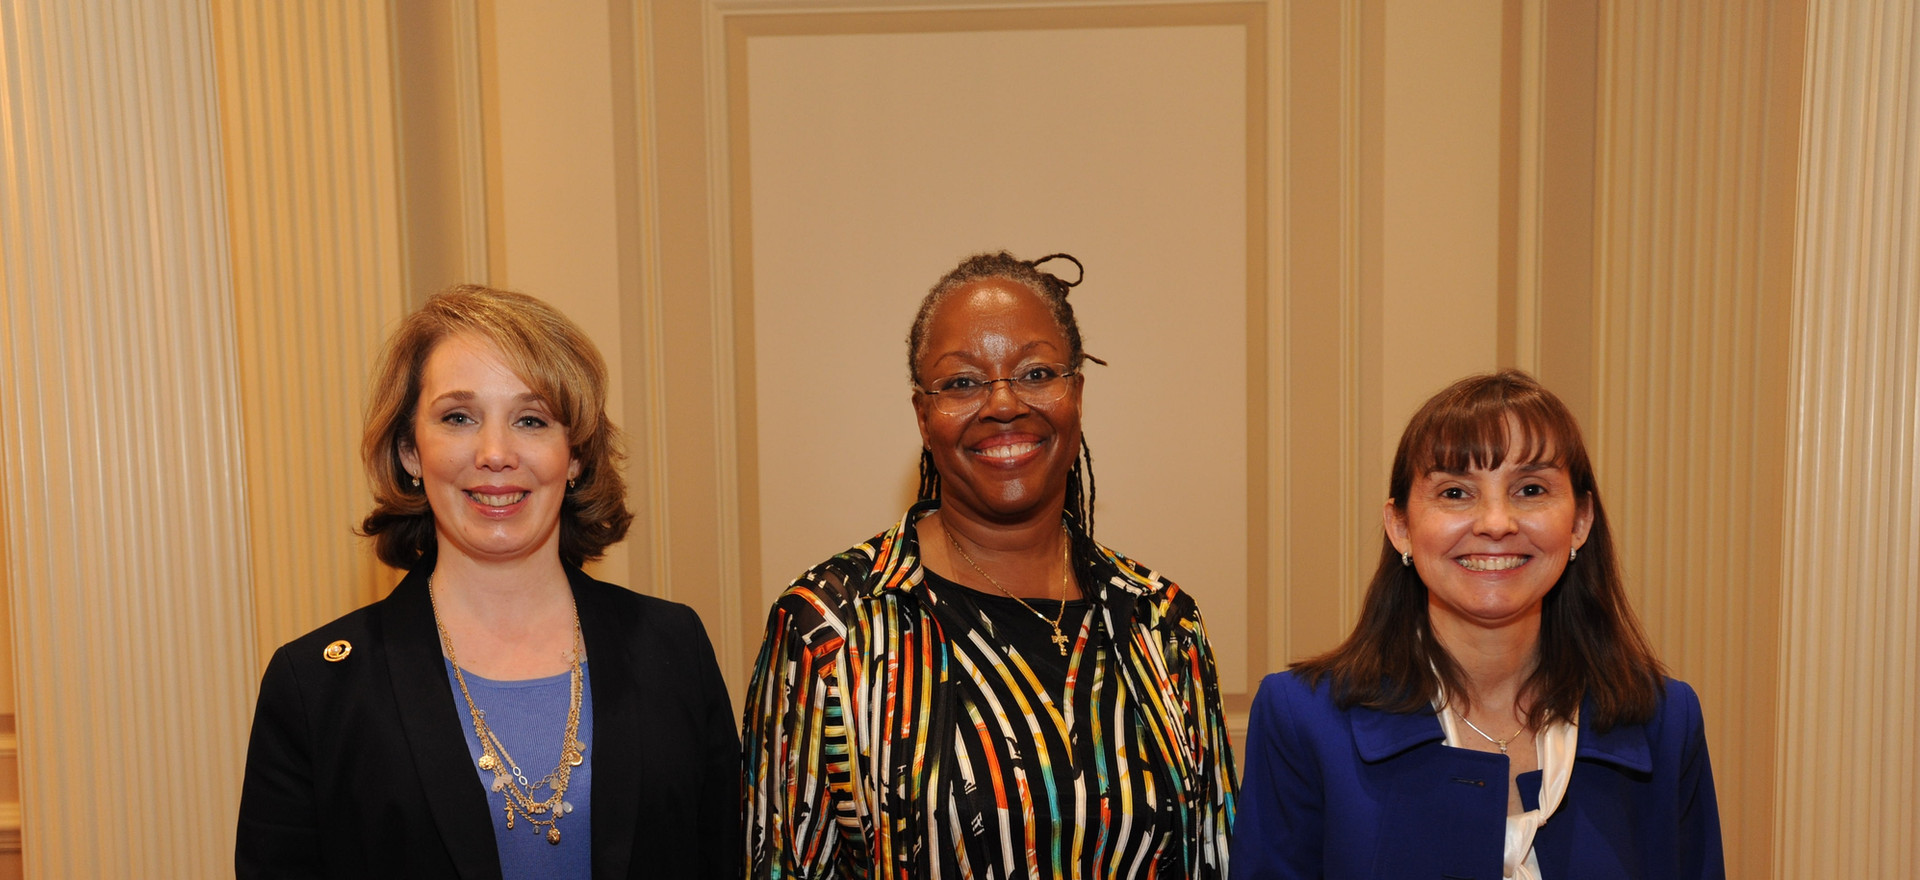 Invited speakers, Dr Kim Choma, Dr Liana R Clarke and Dr Diane McGrory